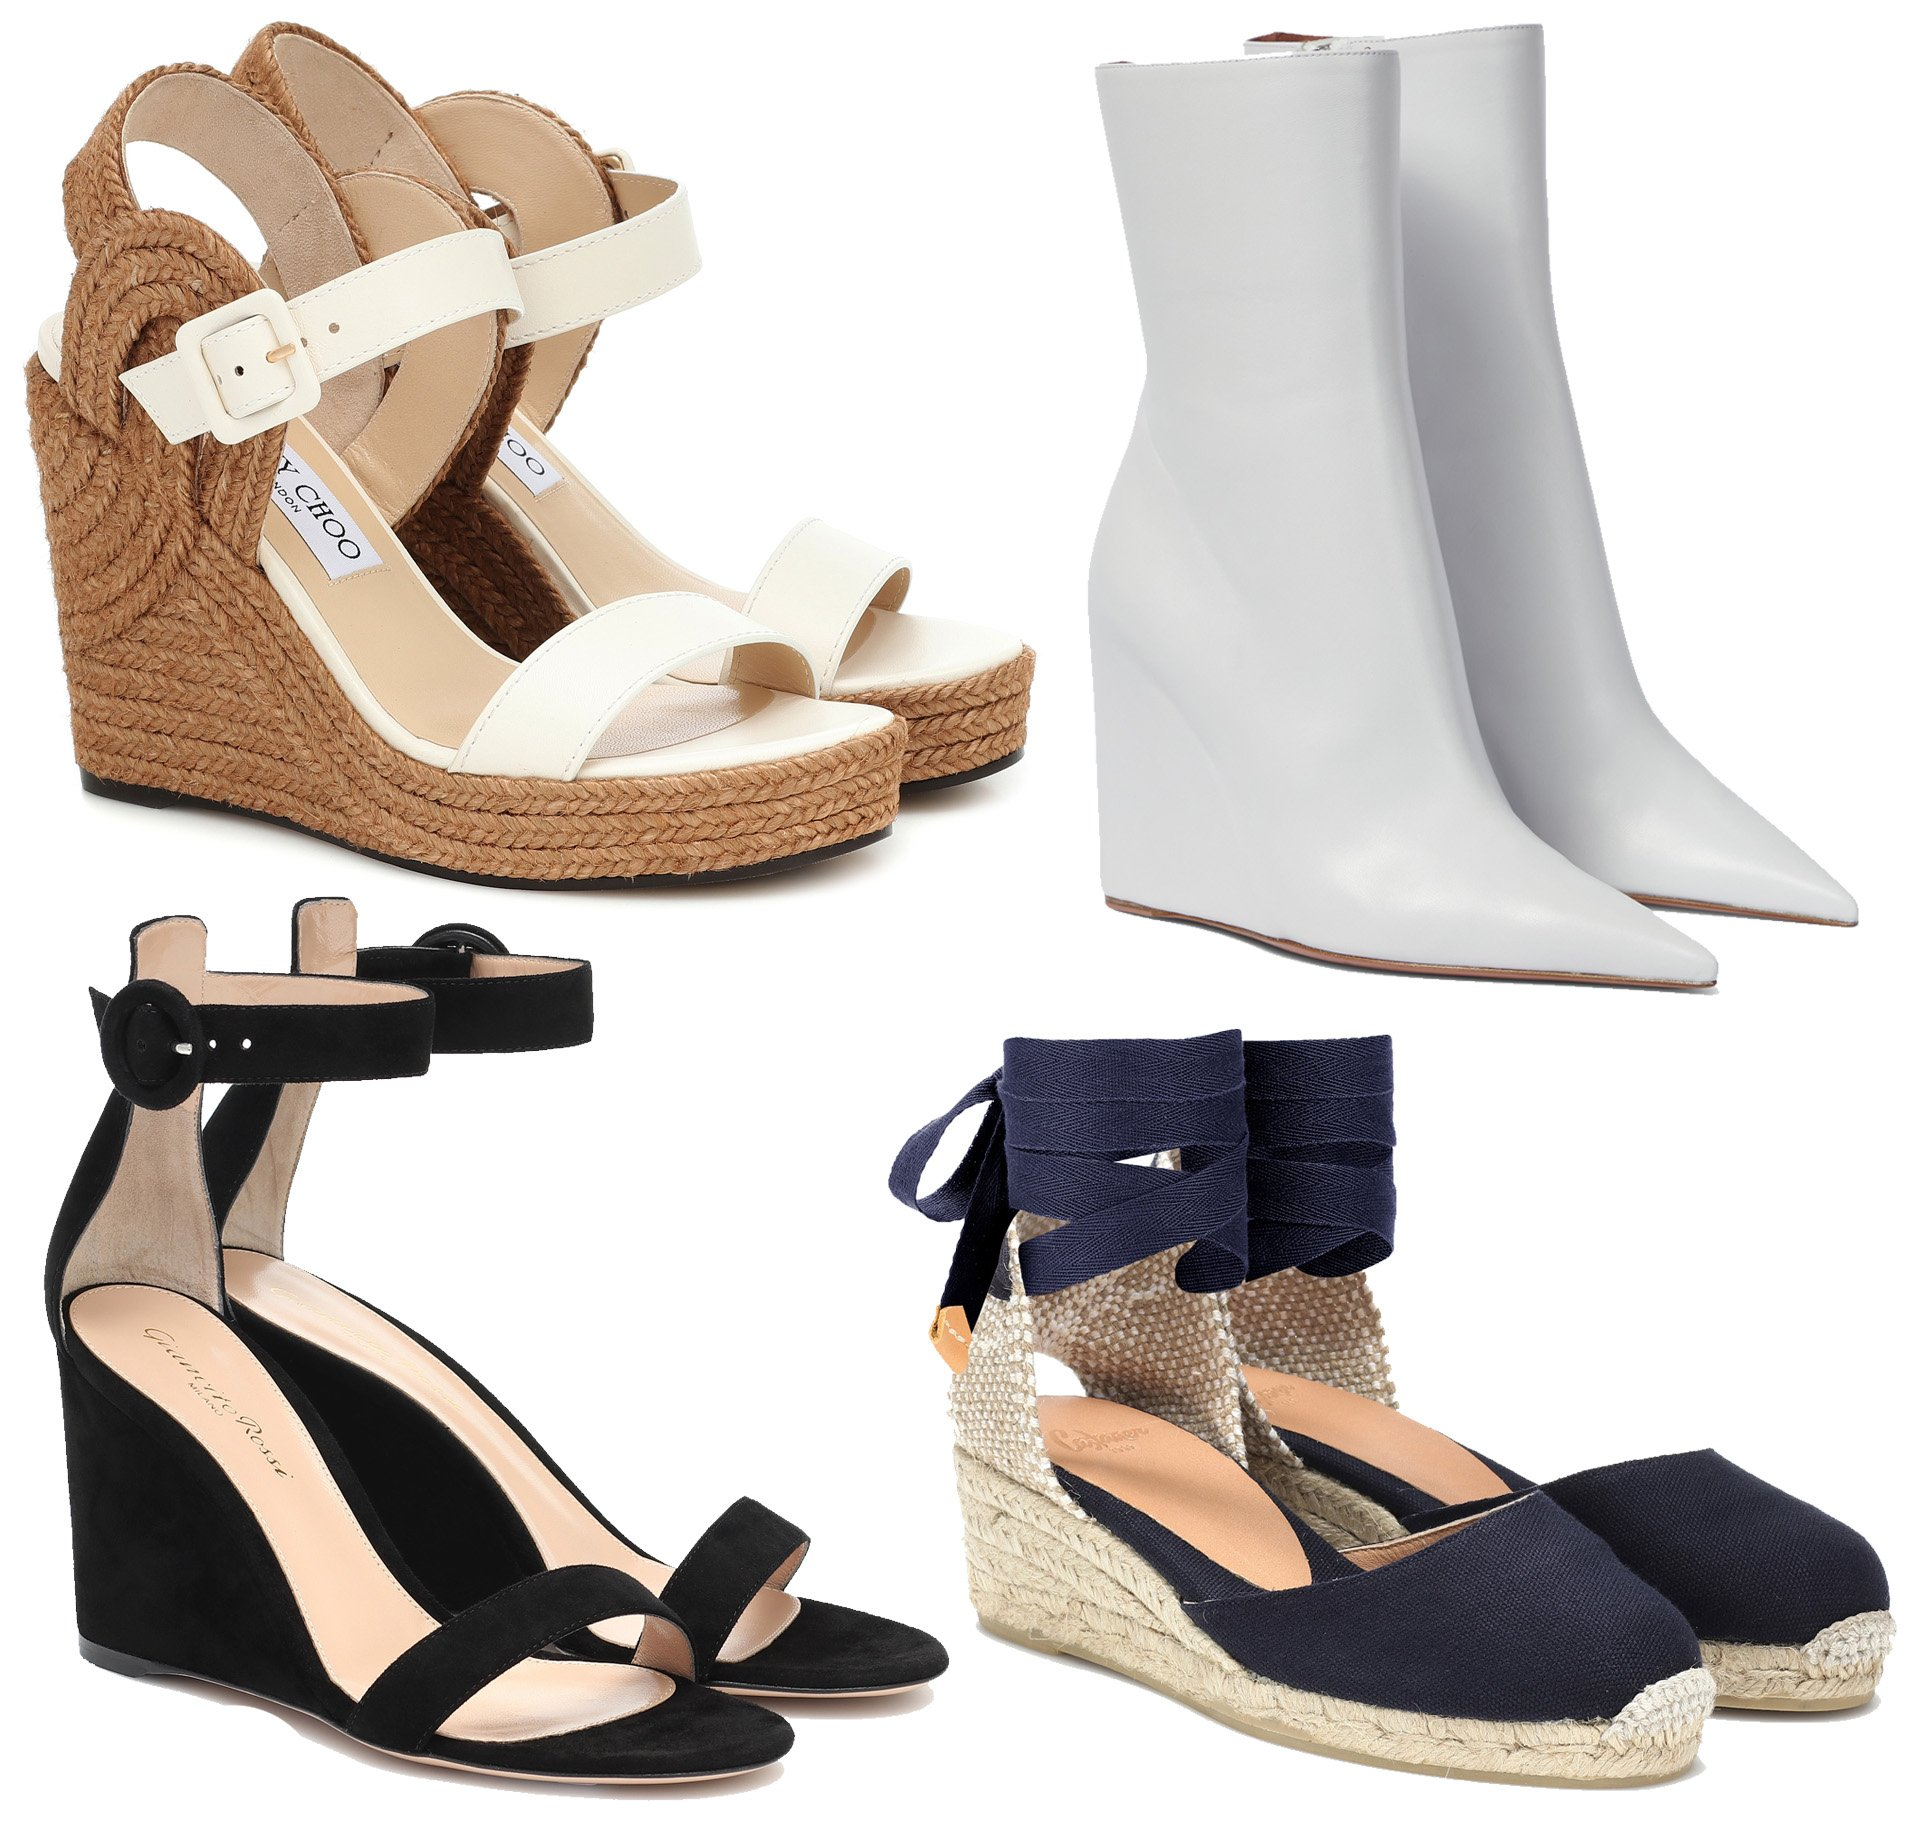 Wedge heels provide height and comfort without compromising style